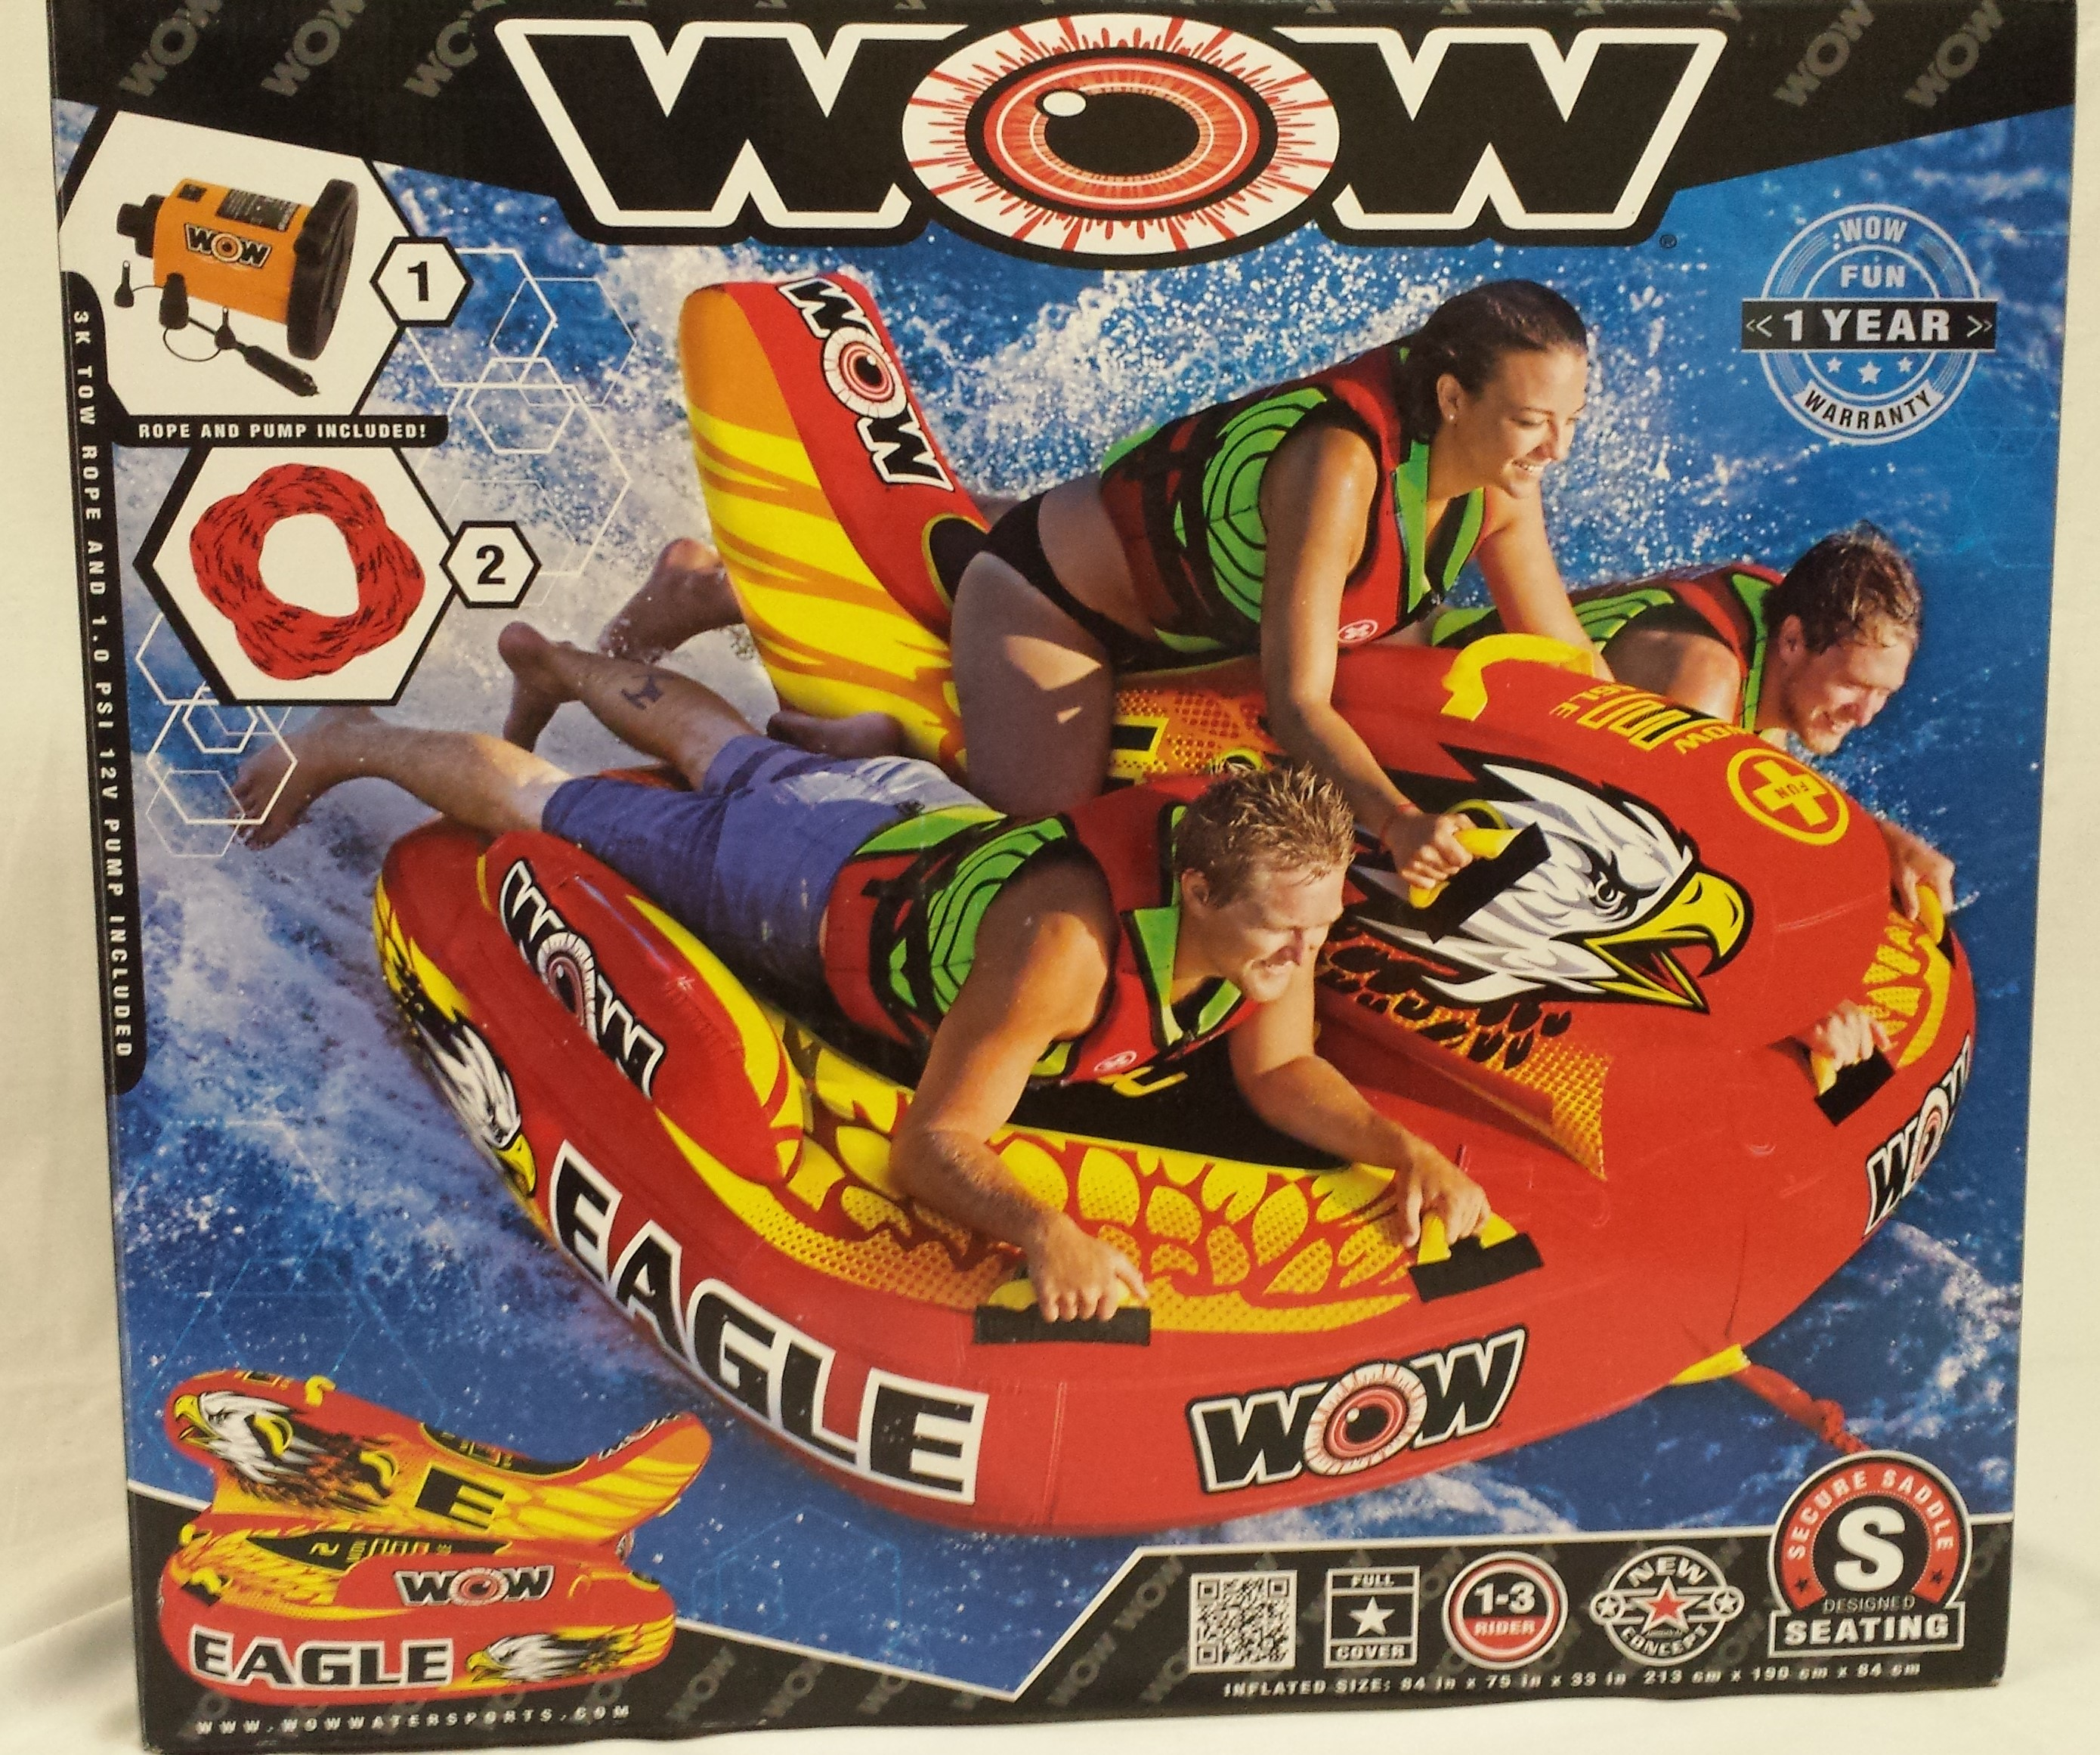 WOW Eagle Inflatable, Towable Tube Lake Water Raft with Tow Rope & Pump by